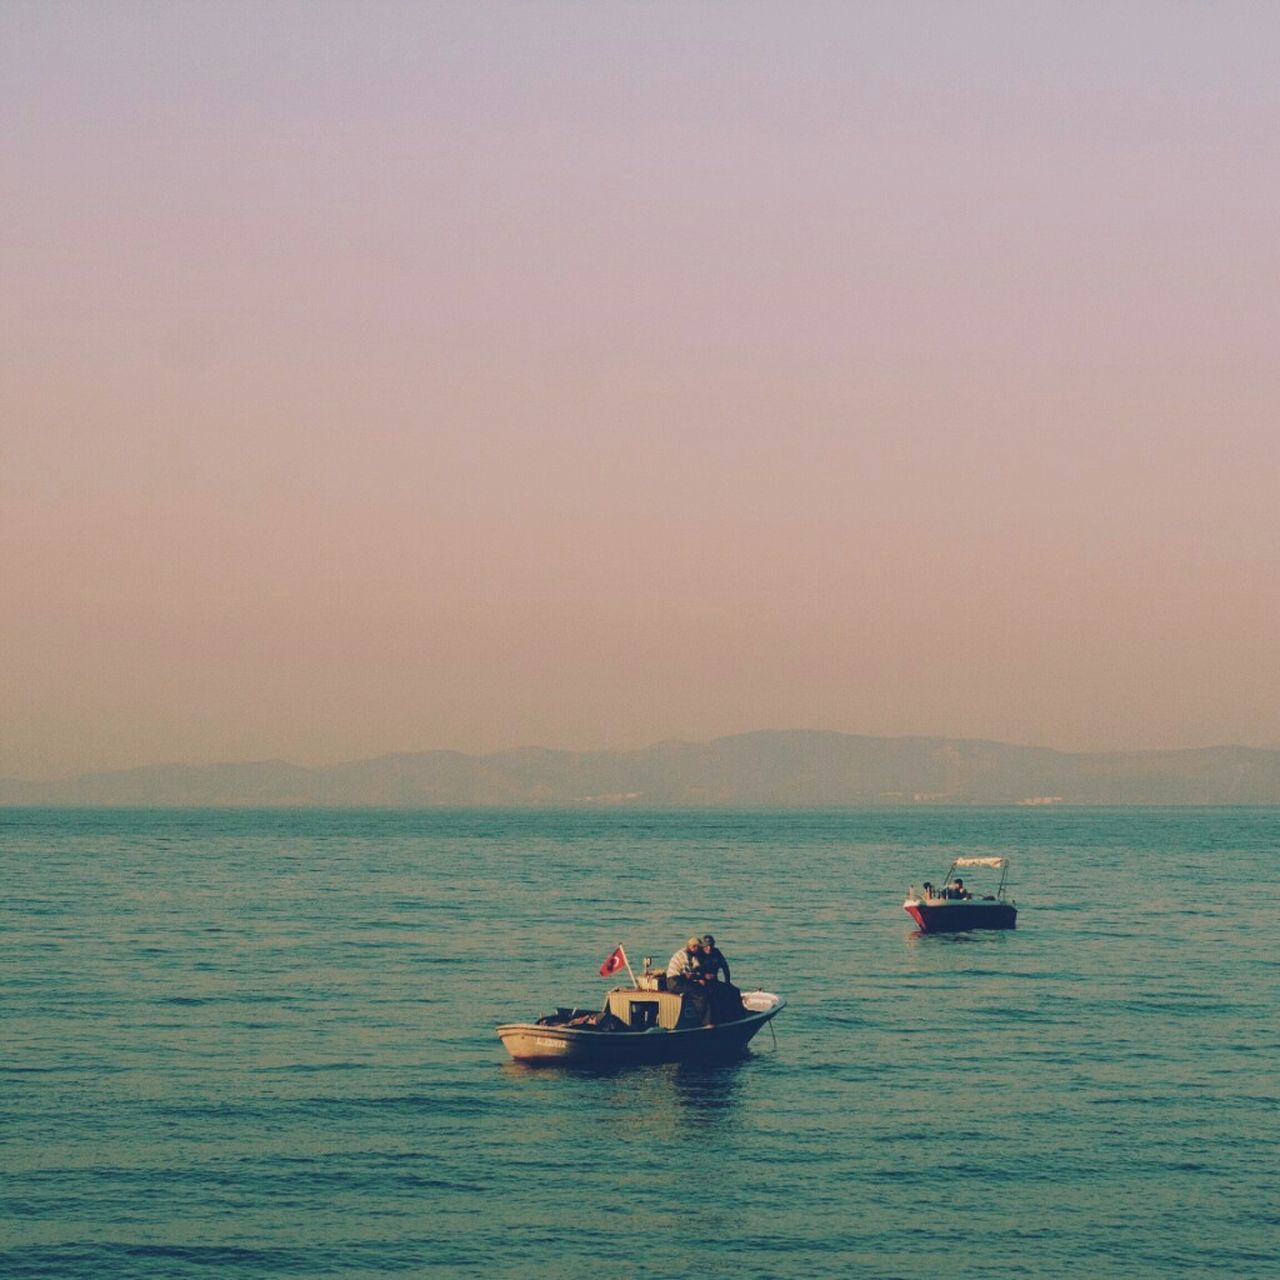 Photography Minimalism Sea Outdoors Sunset Sky Nature Relaxing Enjoying Life Composition Tranquility Summer